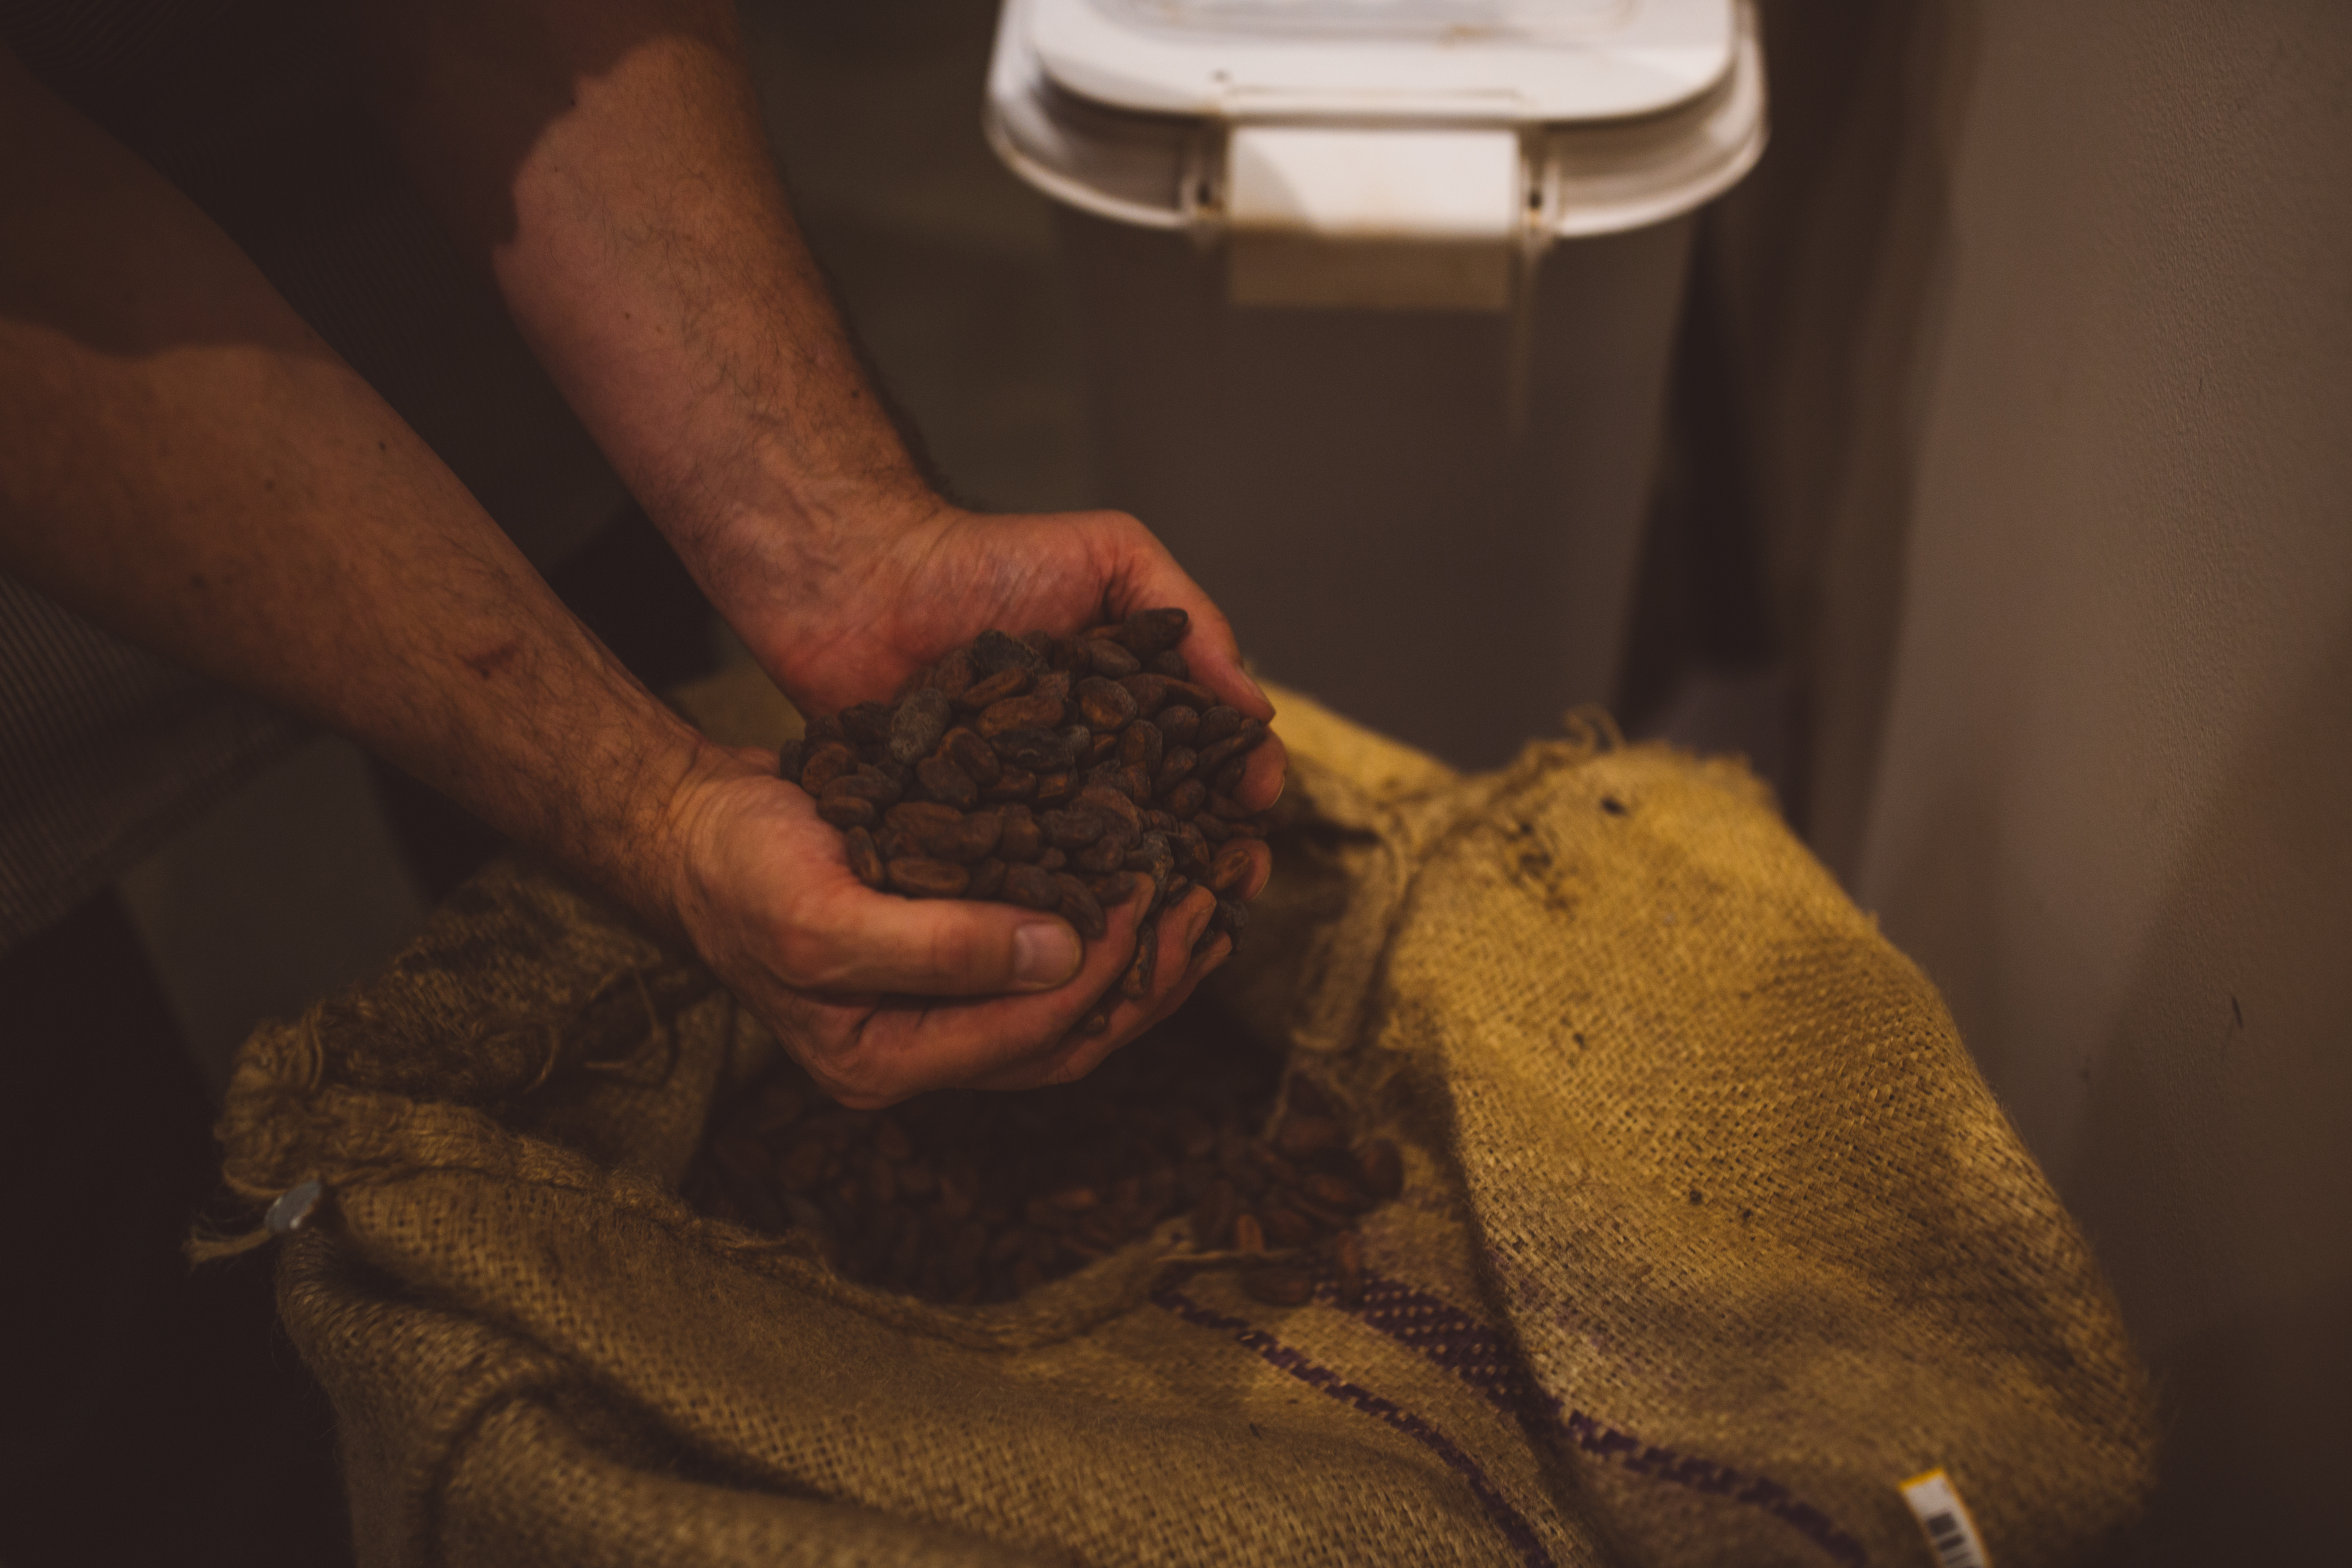 <p>The process of chocolate creation starts with selecting the beans and roasting them until they begin to crack. Next, the cracked beans are put into a winnower, where the nibs are separated from the husks. (Image: Ryan McBoyle / Seattle Refined)</p>